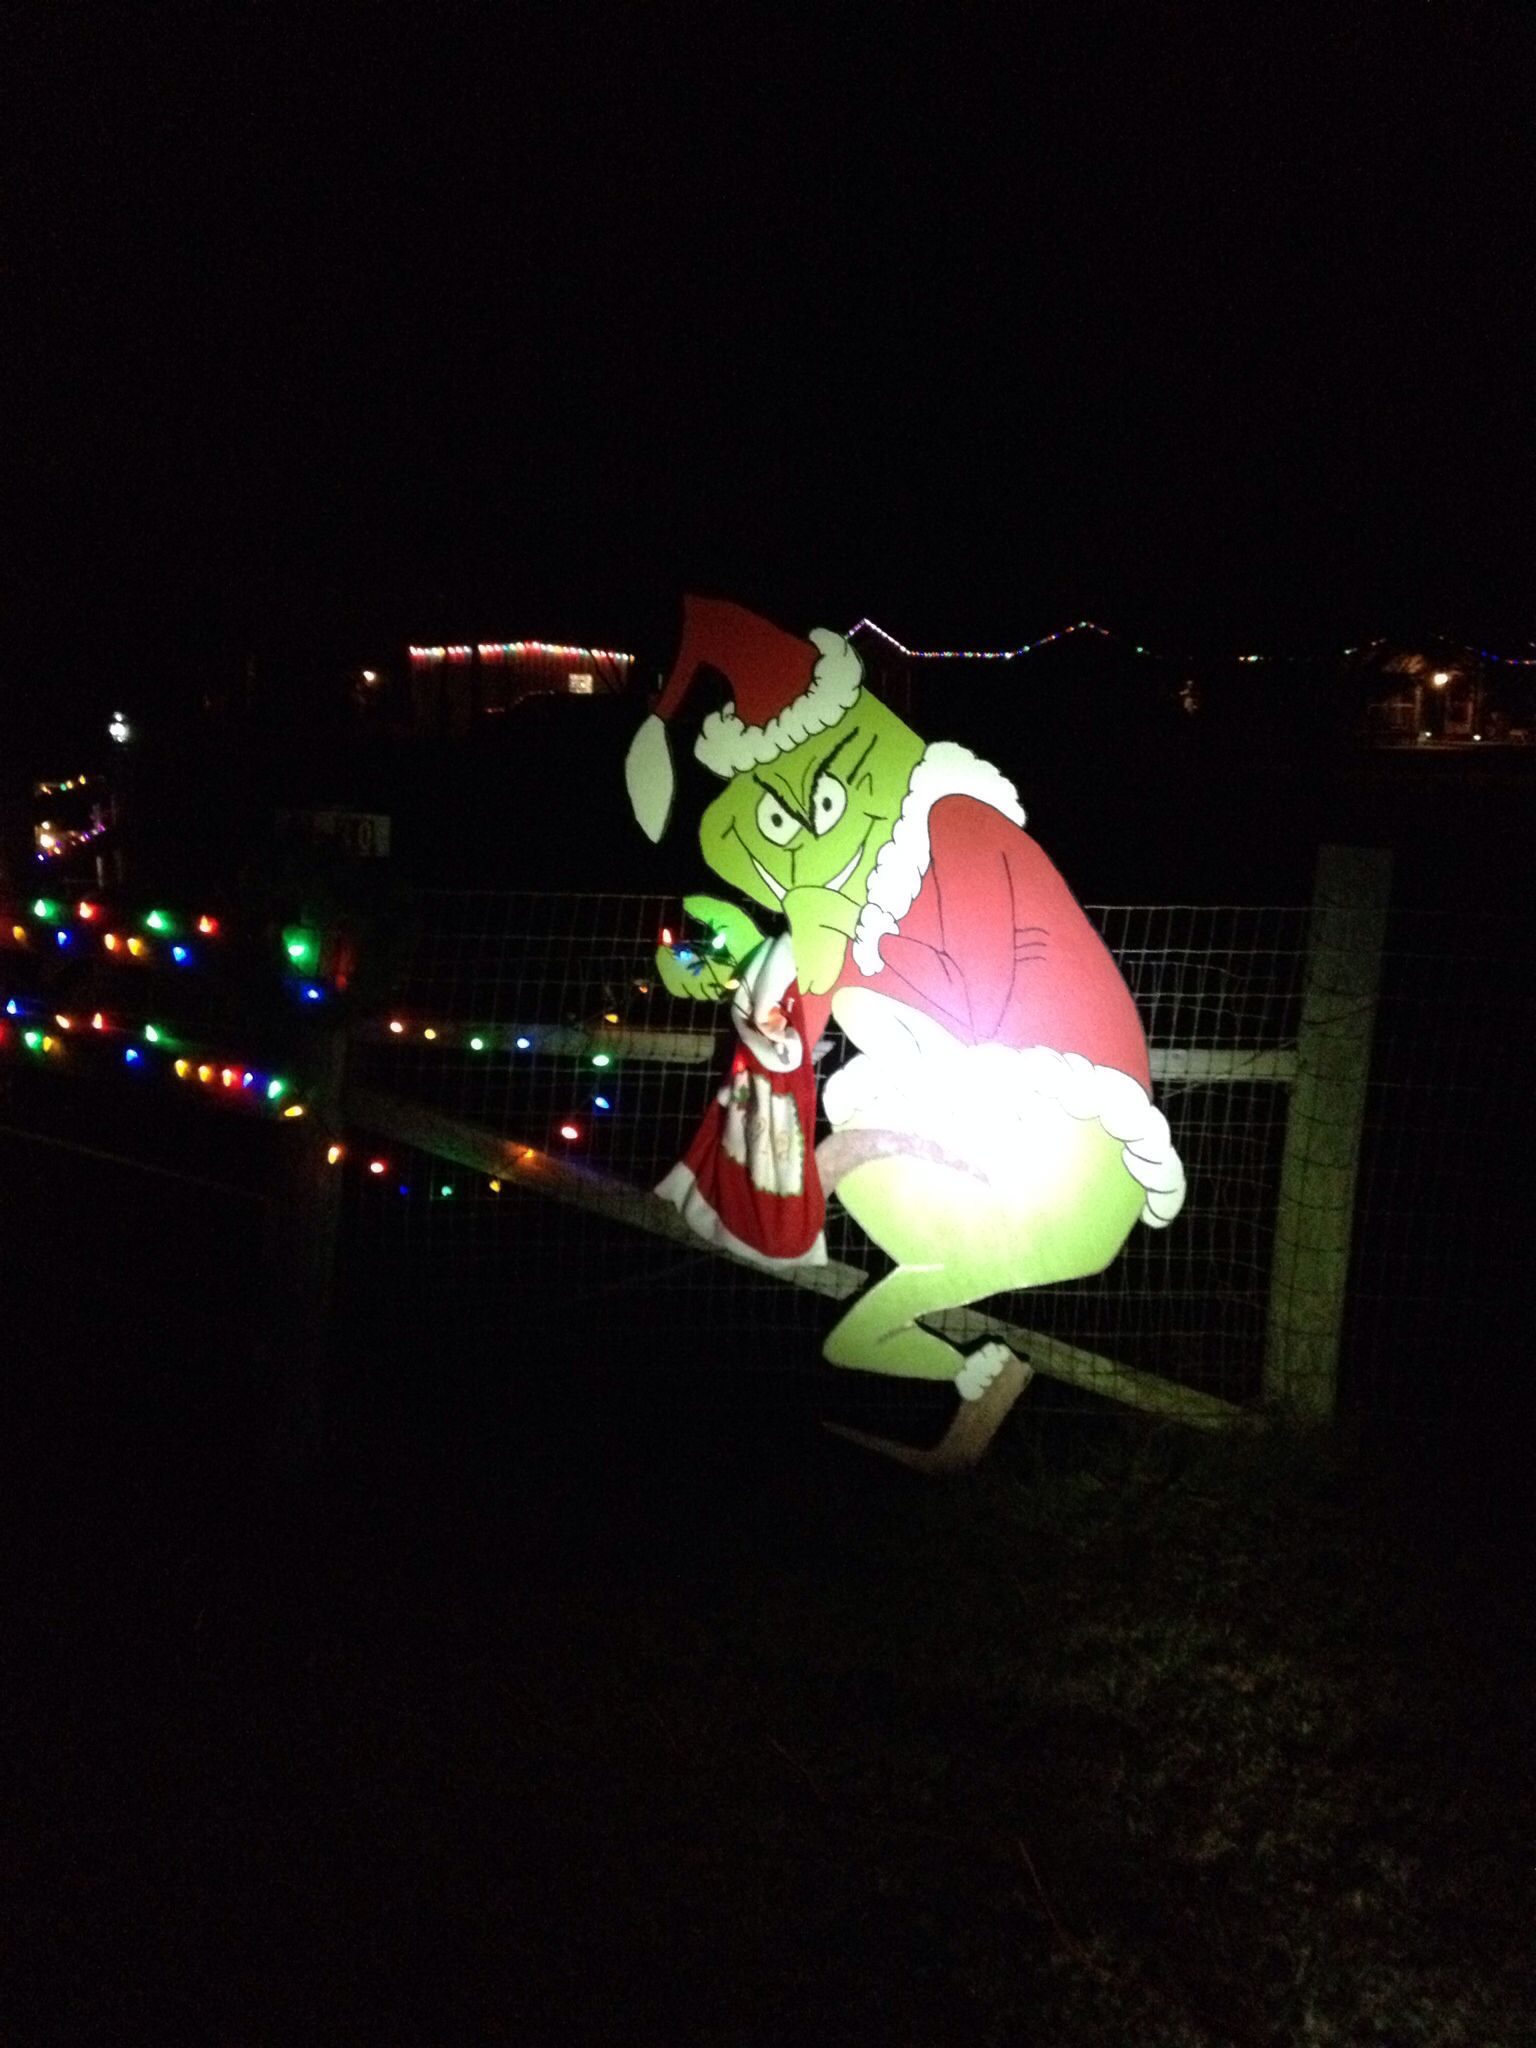 Grinch stealing lights christmas decorations - Outdoor Grinch Stealing Lights